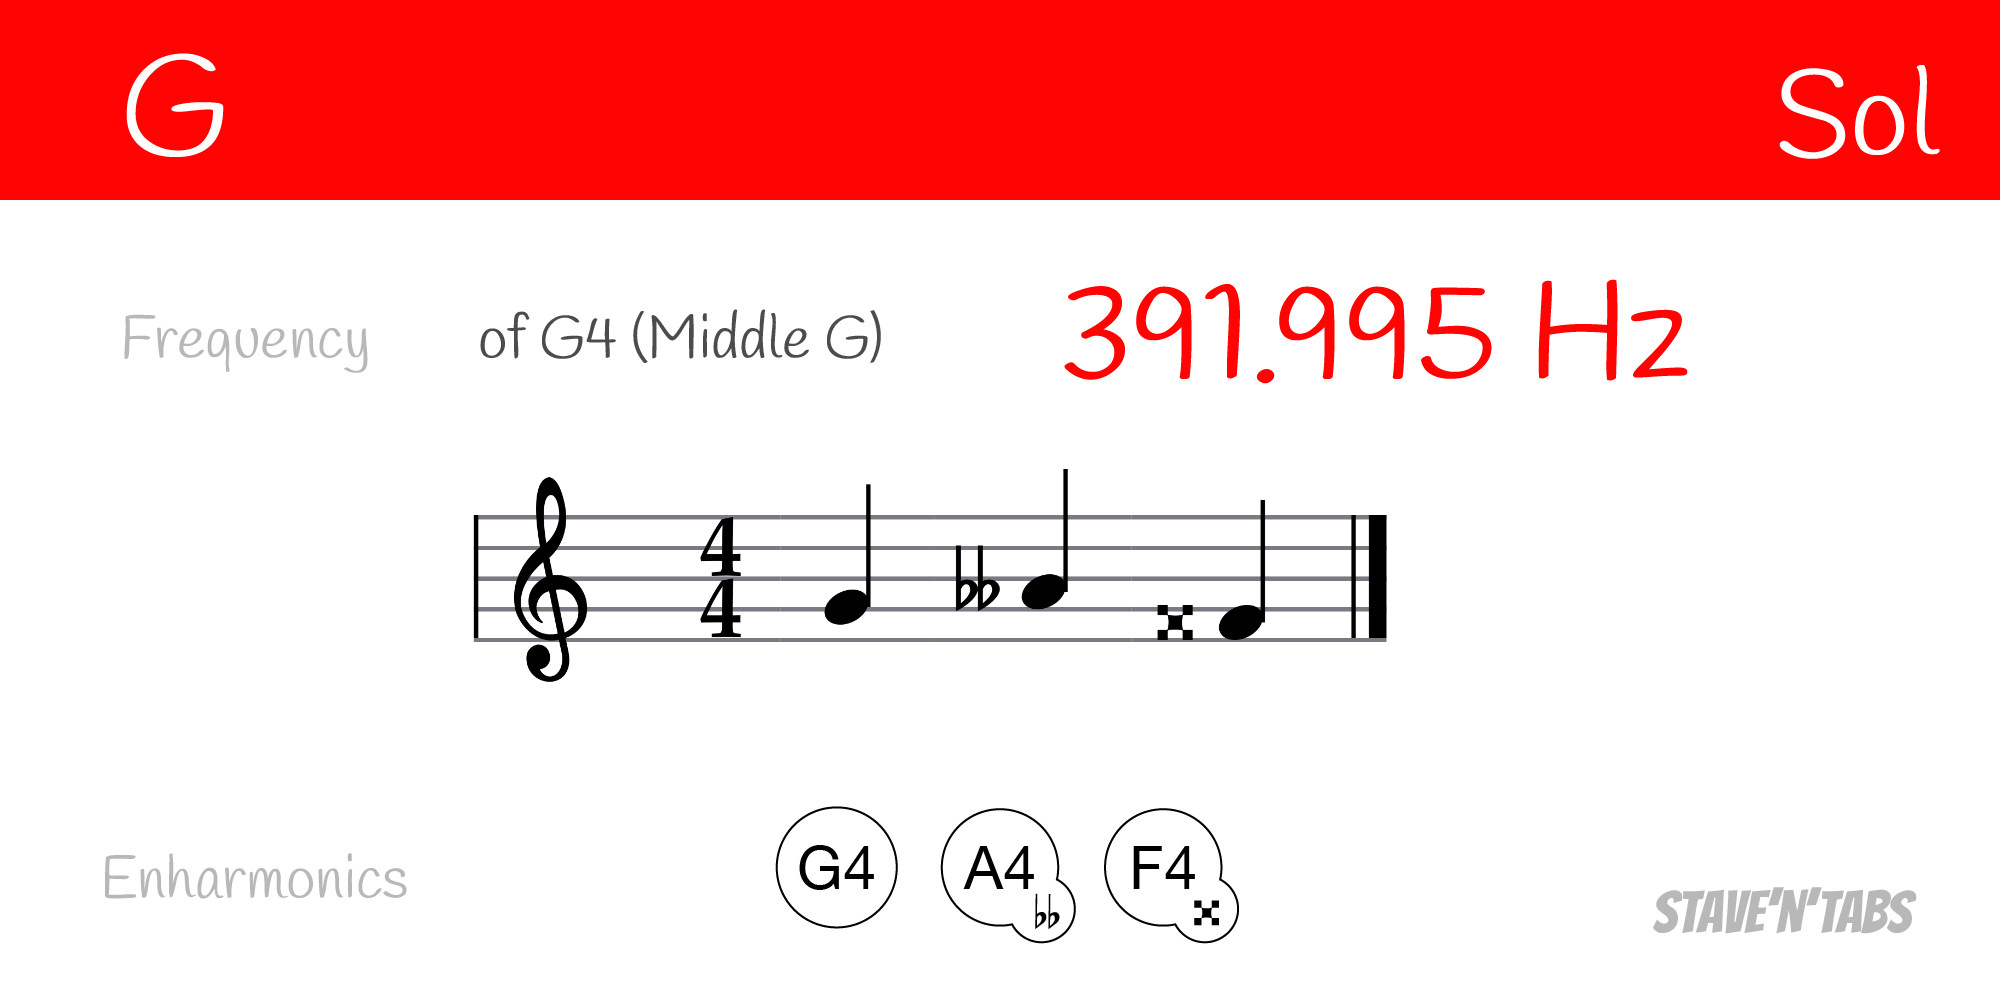 Enharmonic equivalents for the note G